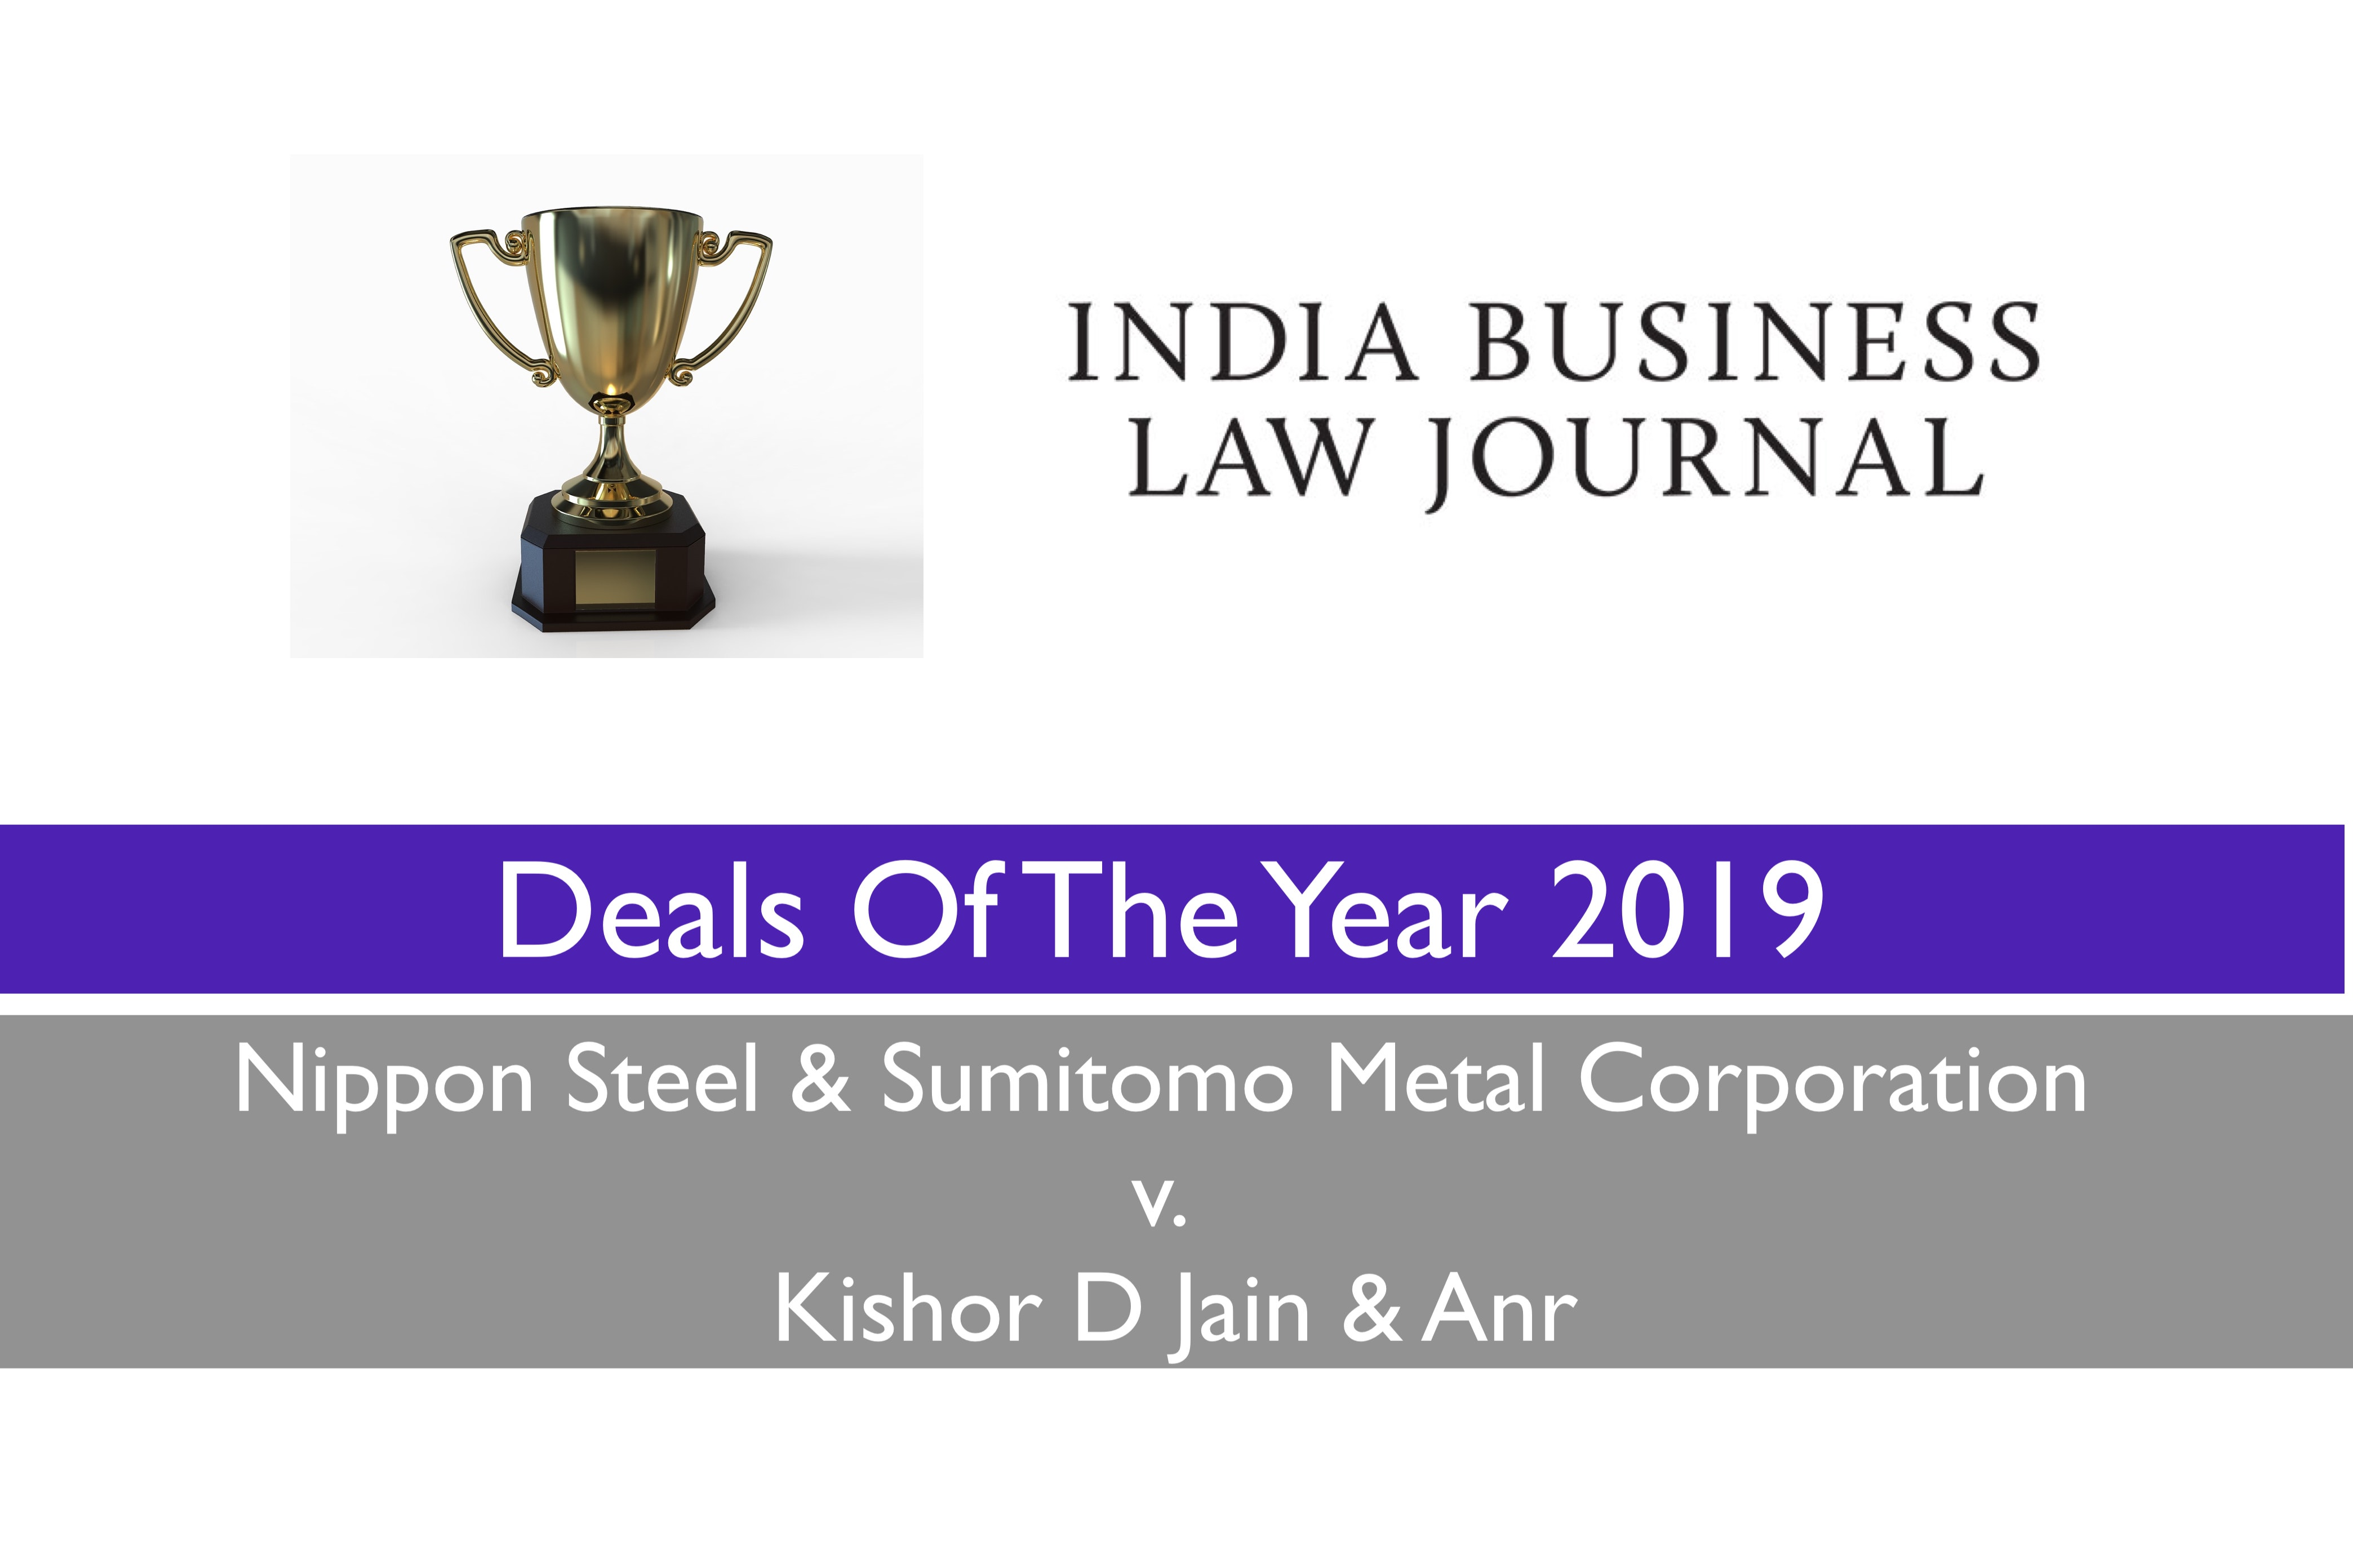 Remfry in IBLJ's 'Deals of the Year'